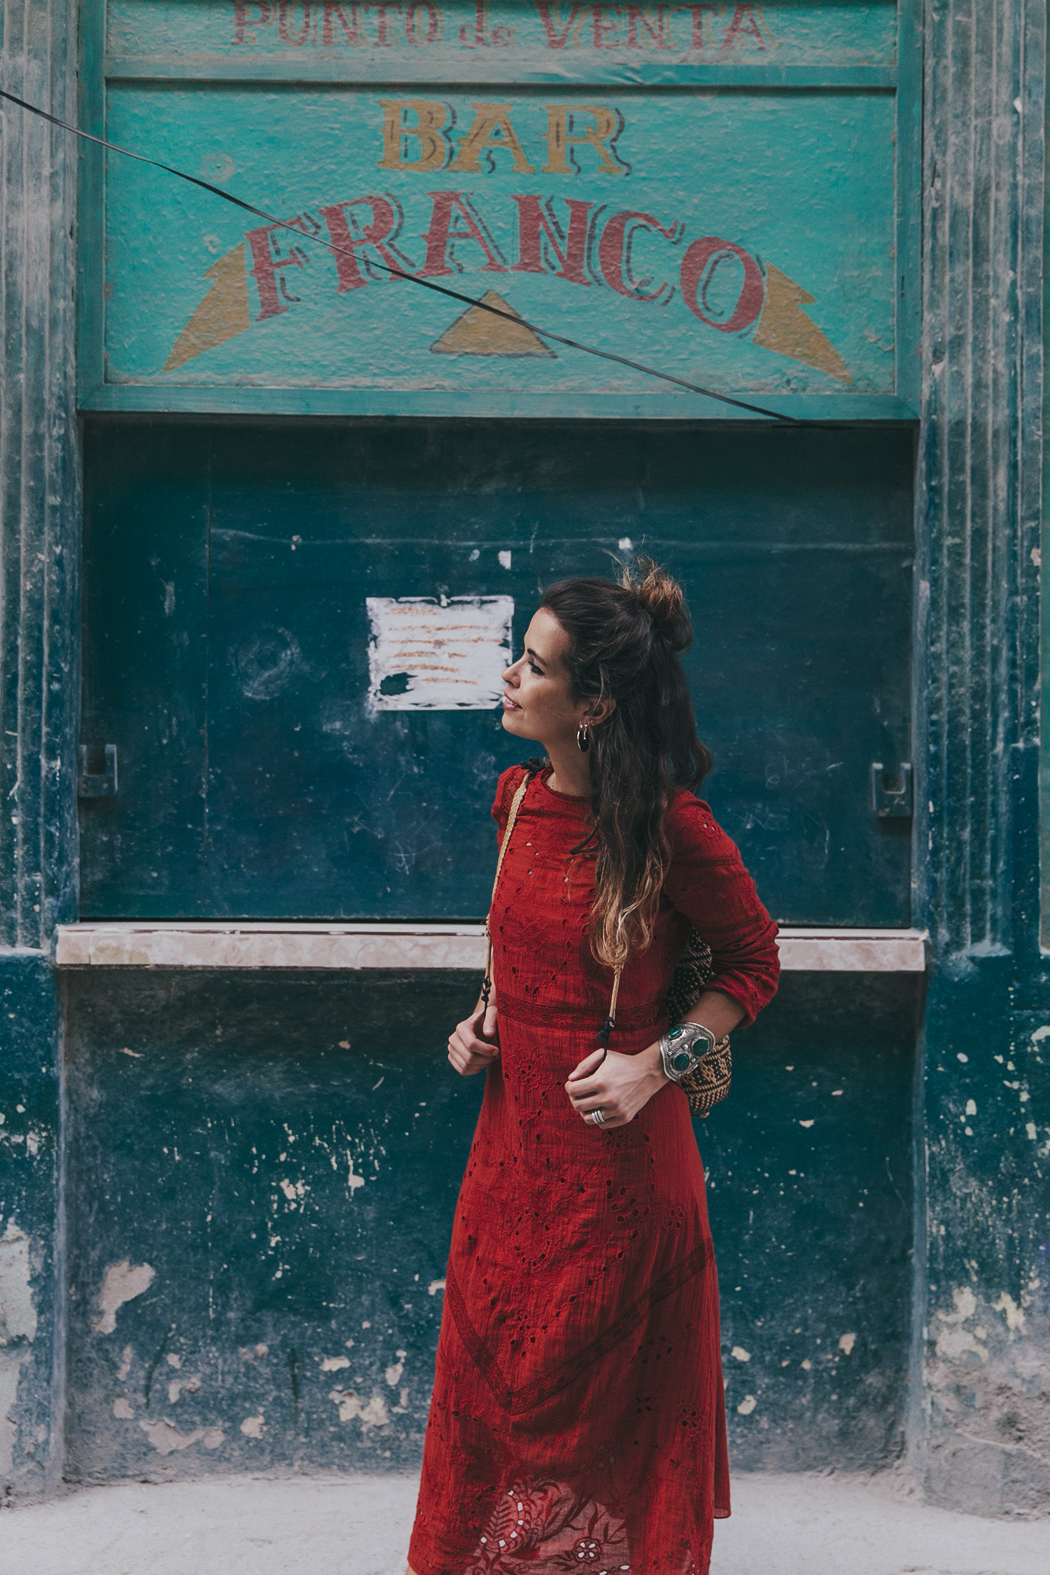 Cuba-La_Habana_Centro-Red_Dress-PomPom_Sandals-Backpack-Sreetstyle-Half_Knot_Hairstyle-Outfit-11